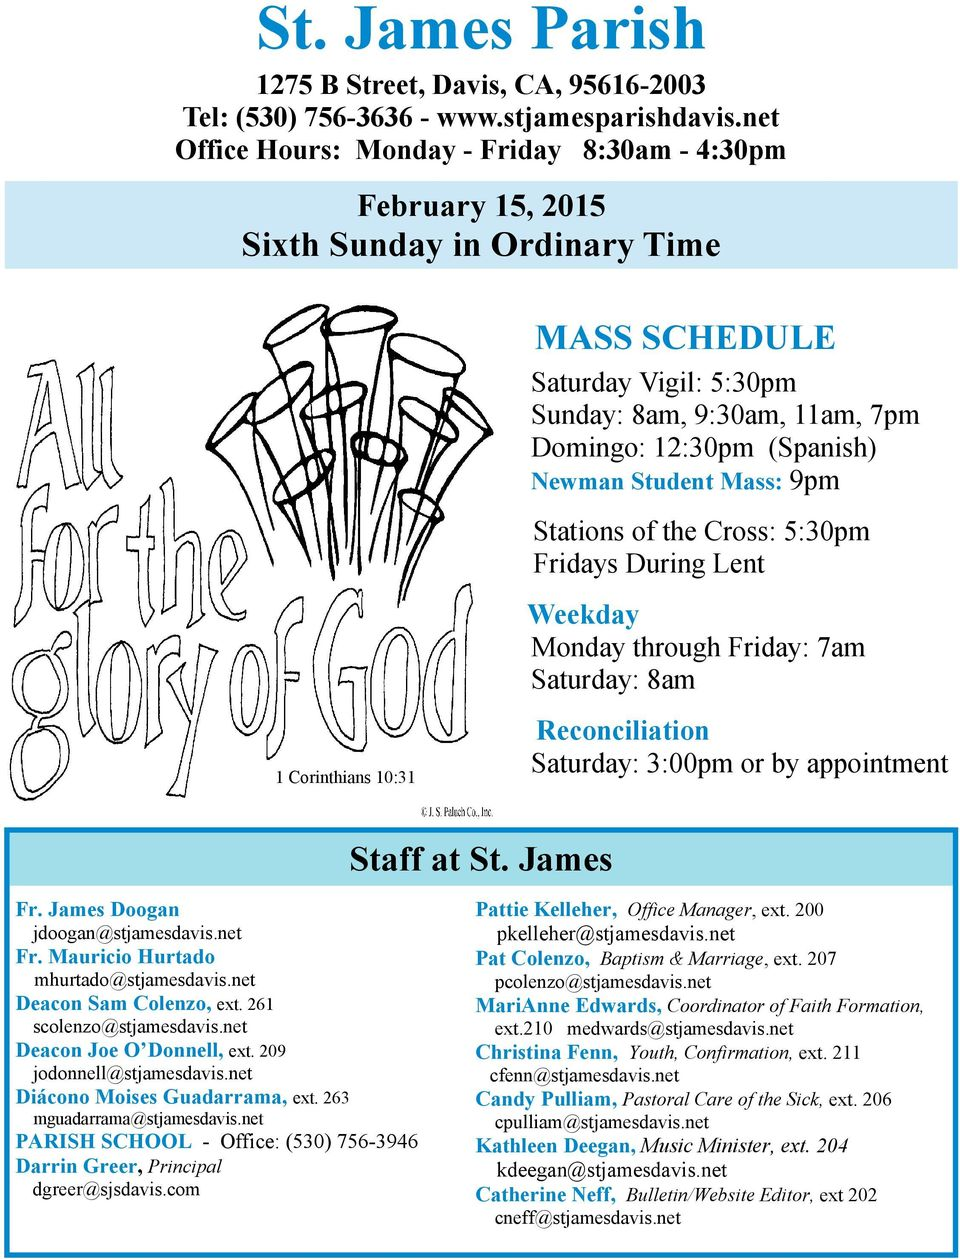 Student Mass: 9pm Love 1 Corinthians 10:31 Stations of the Cross: 5:30pm Fridays During Lent Weekday Monday through Friday: 7am Saturday: 8am Reconciliation Saturday: 3:00pm or by appointment Staff